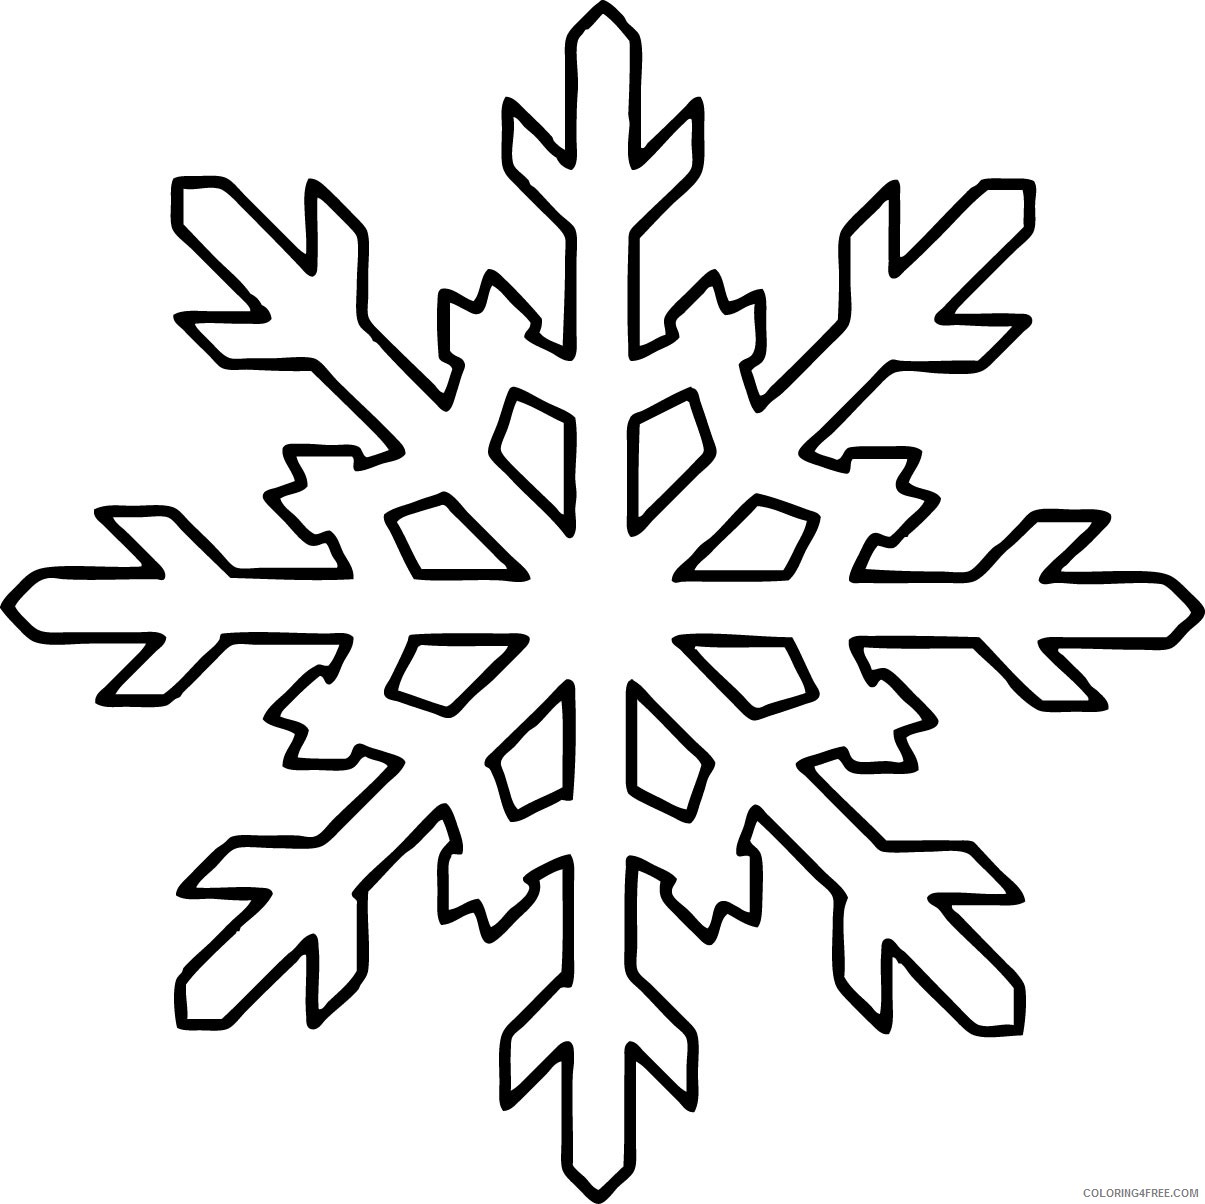 snowflake coloring pages for kids printable Coloring4free